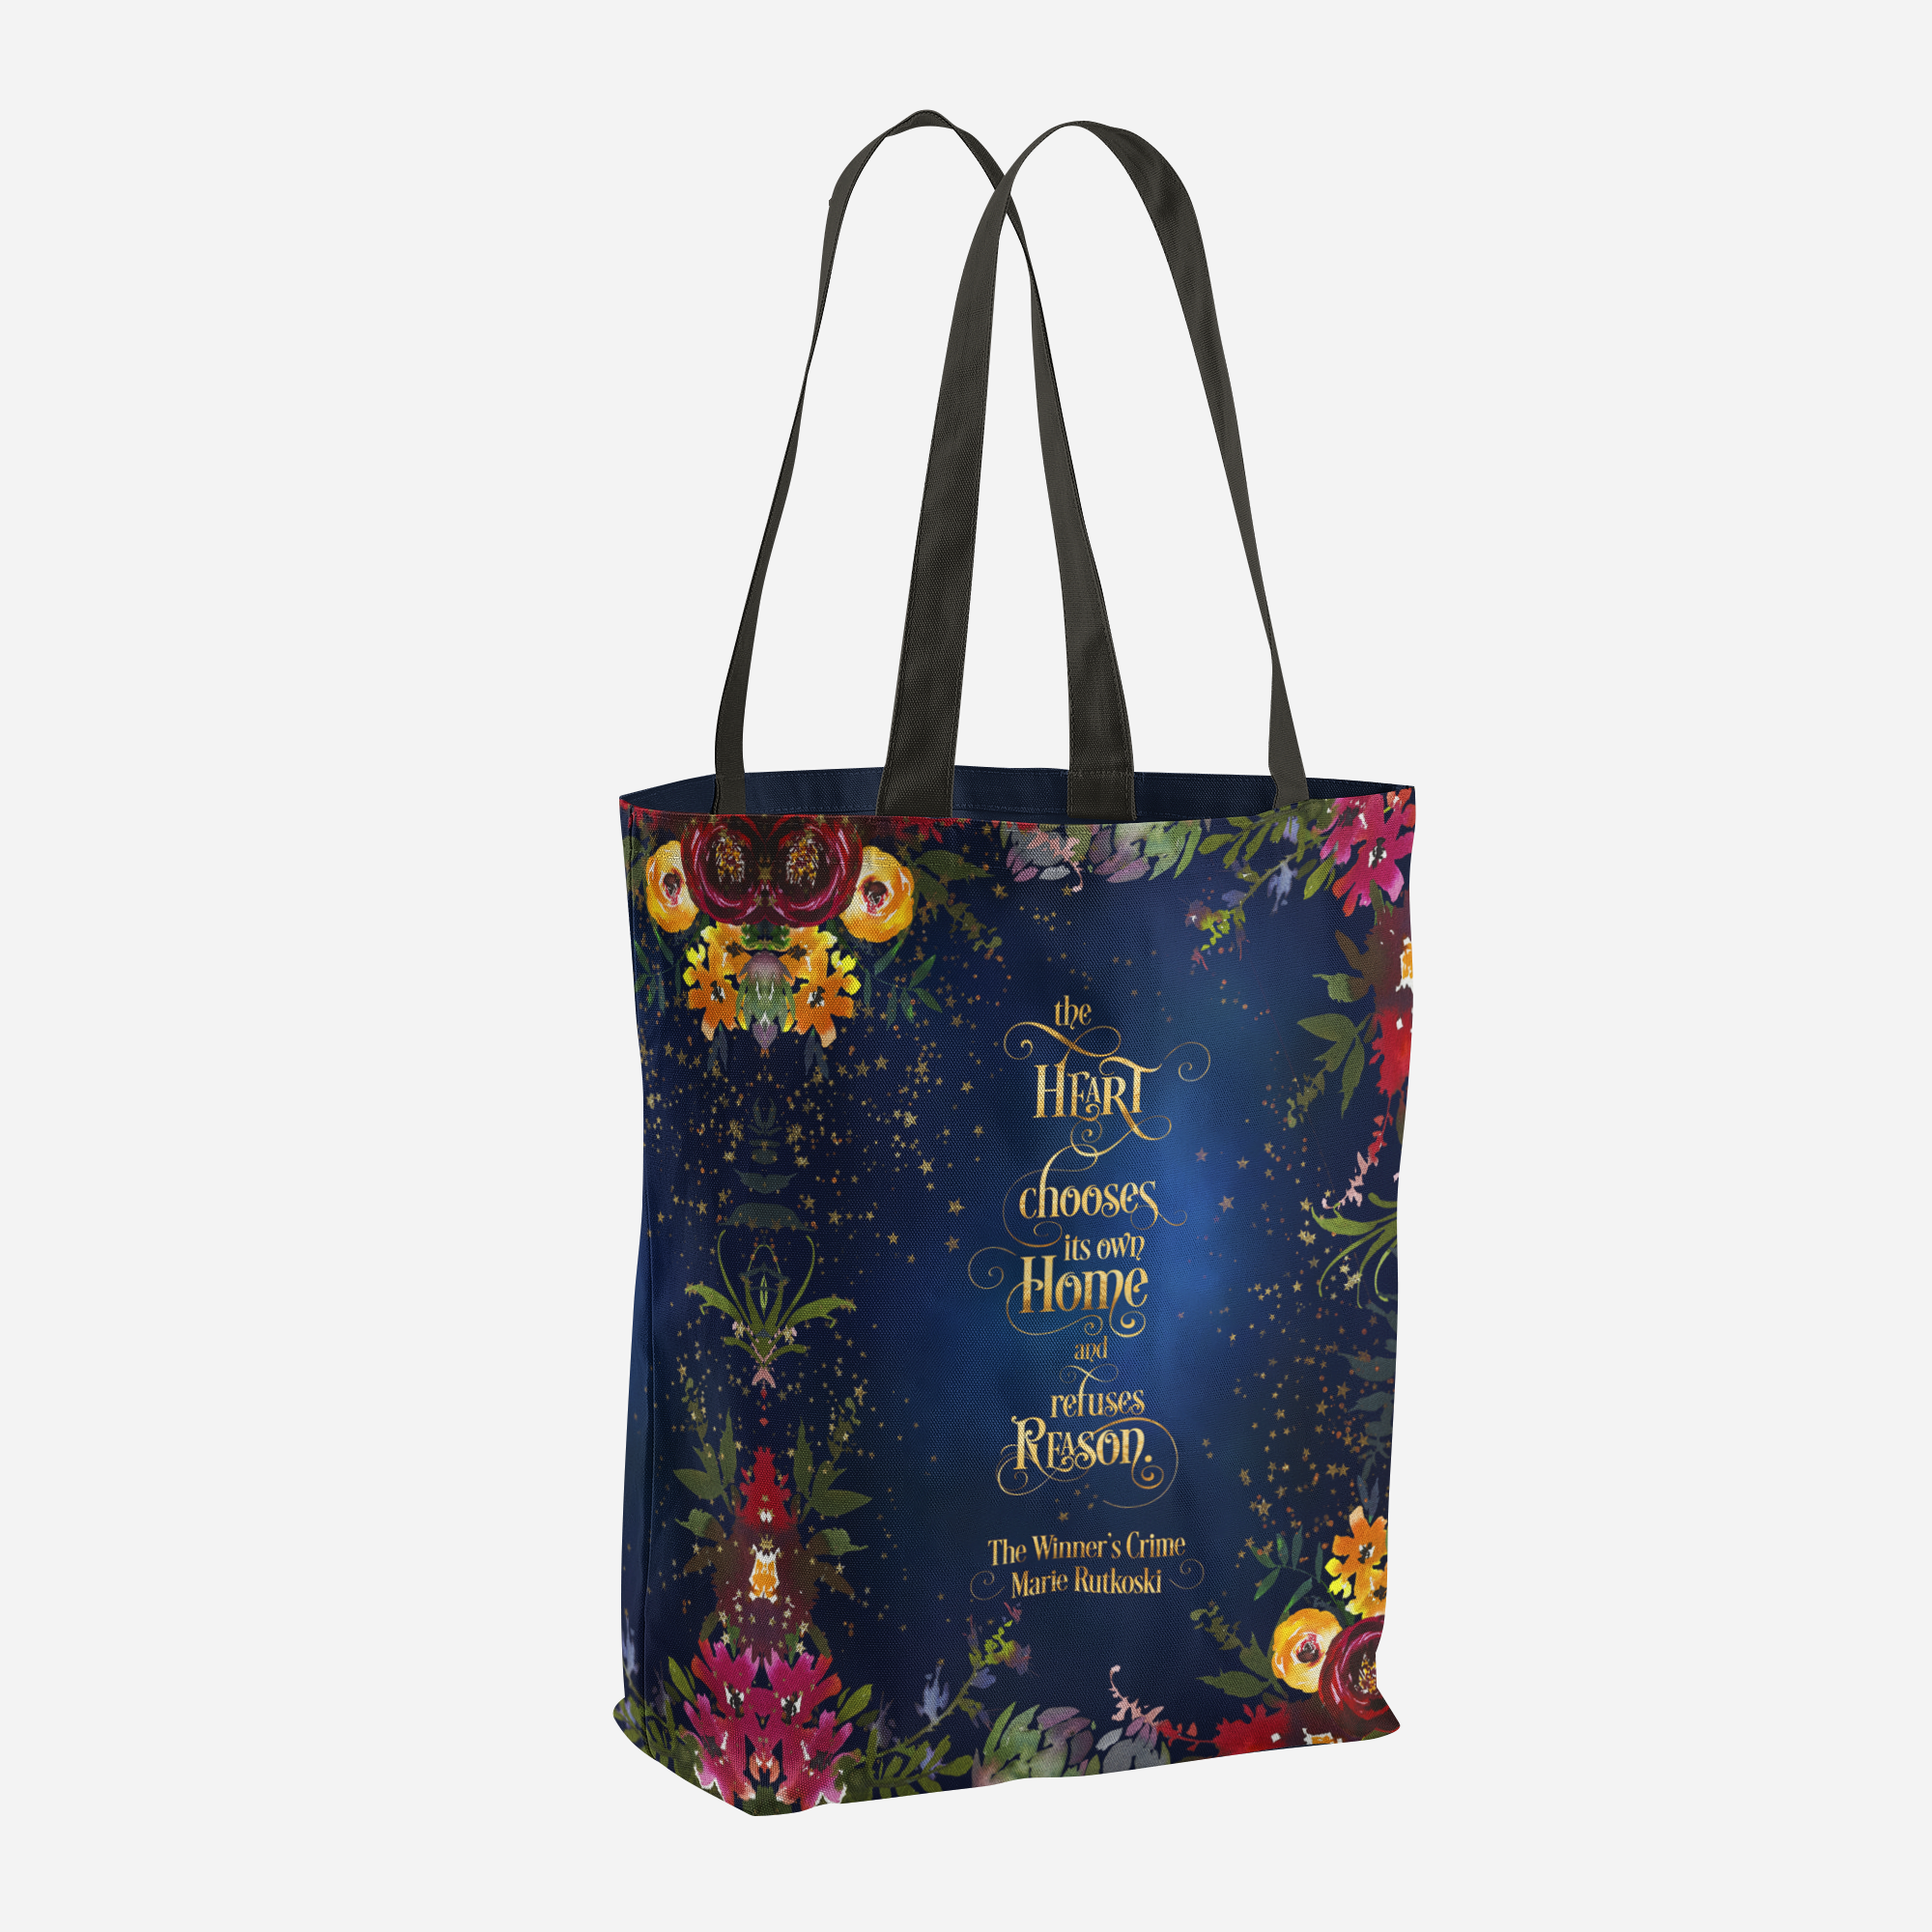 The heart chooses its own home... The Winner's Crime Quote Tote Bag - LitLifeCo.